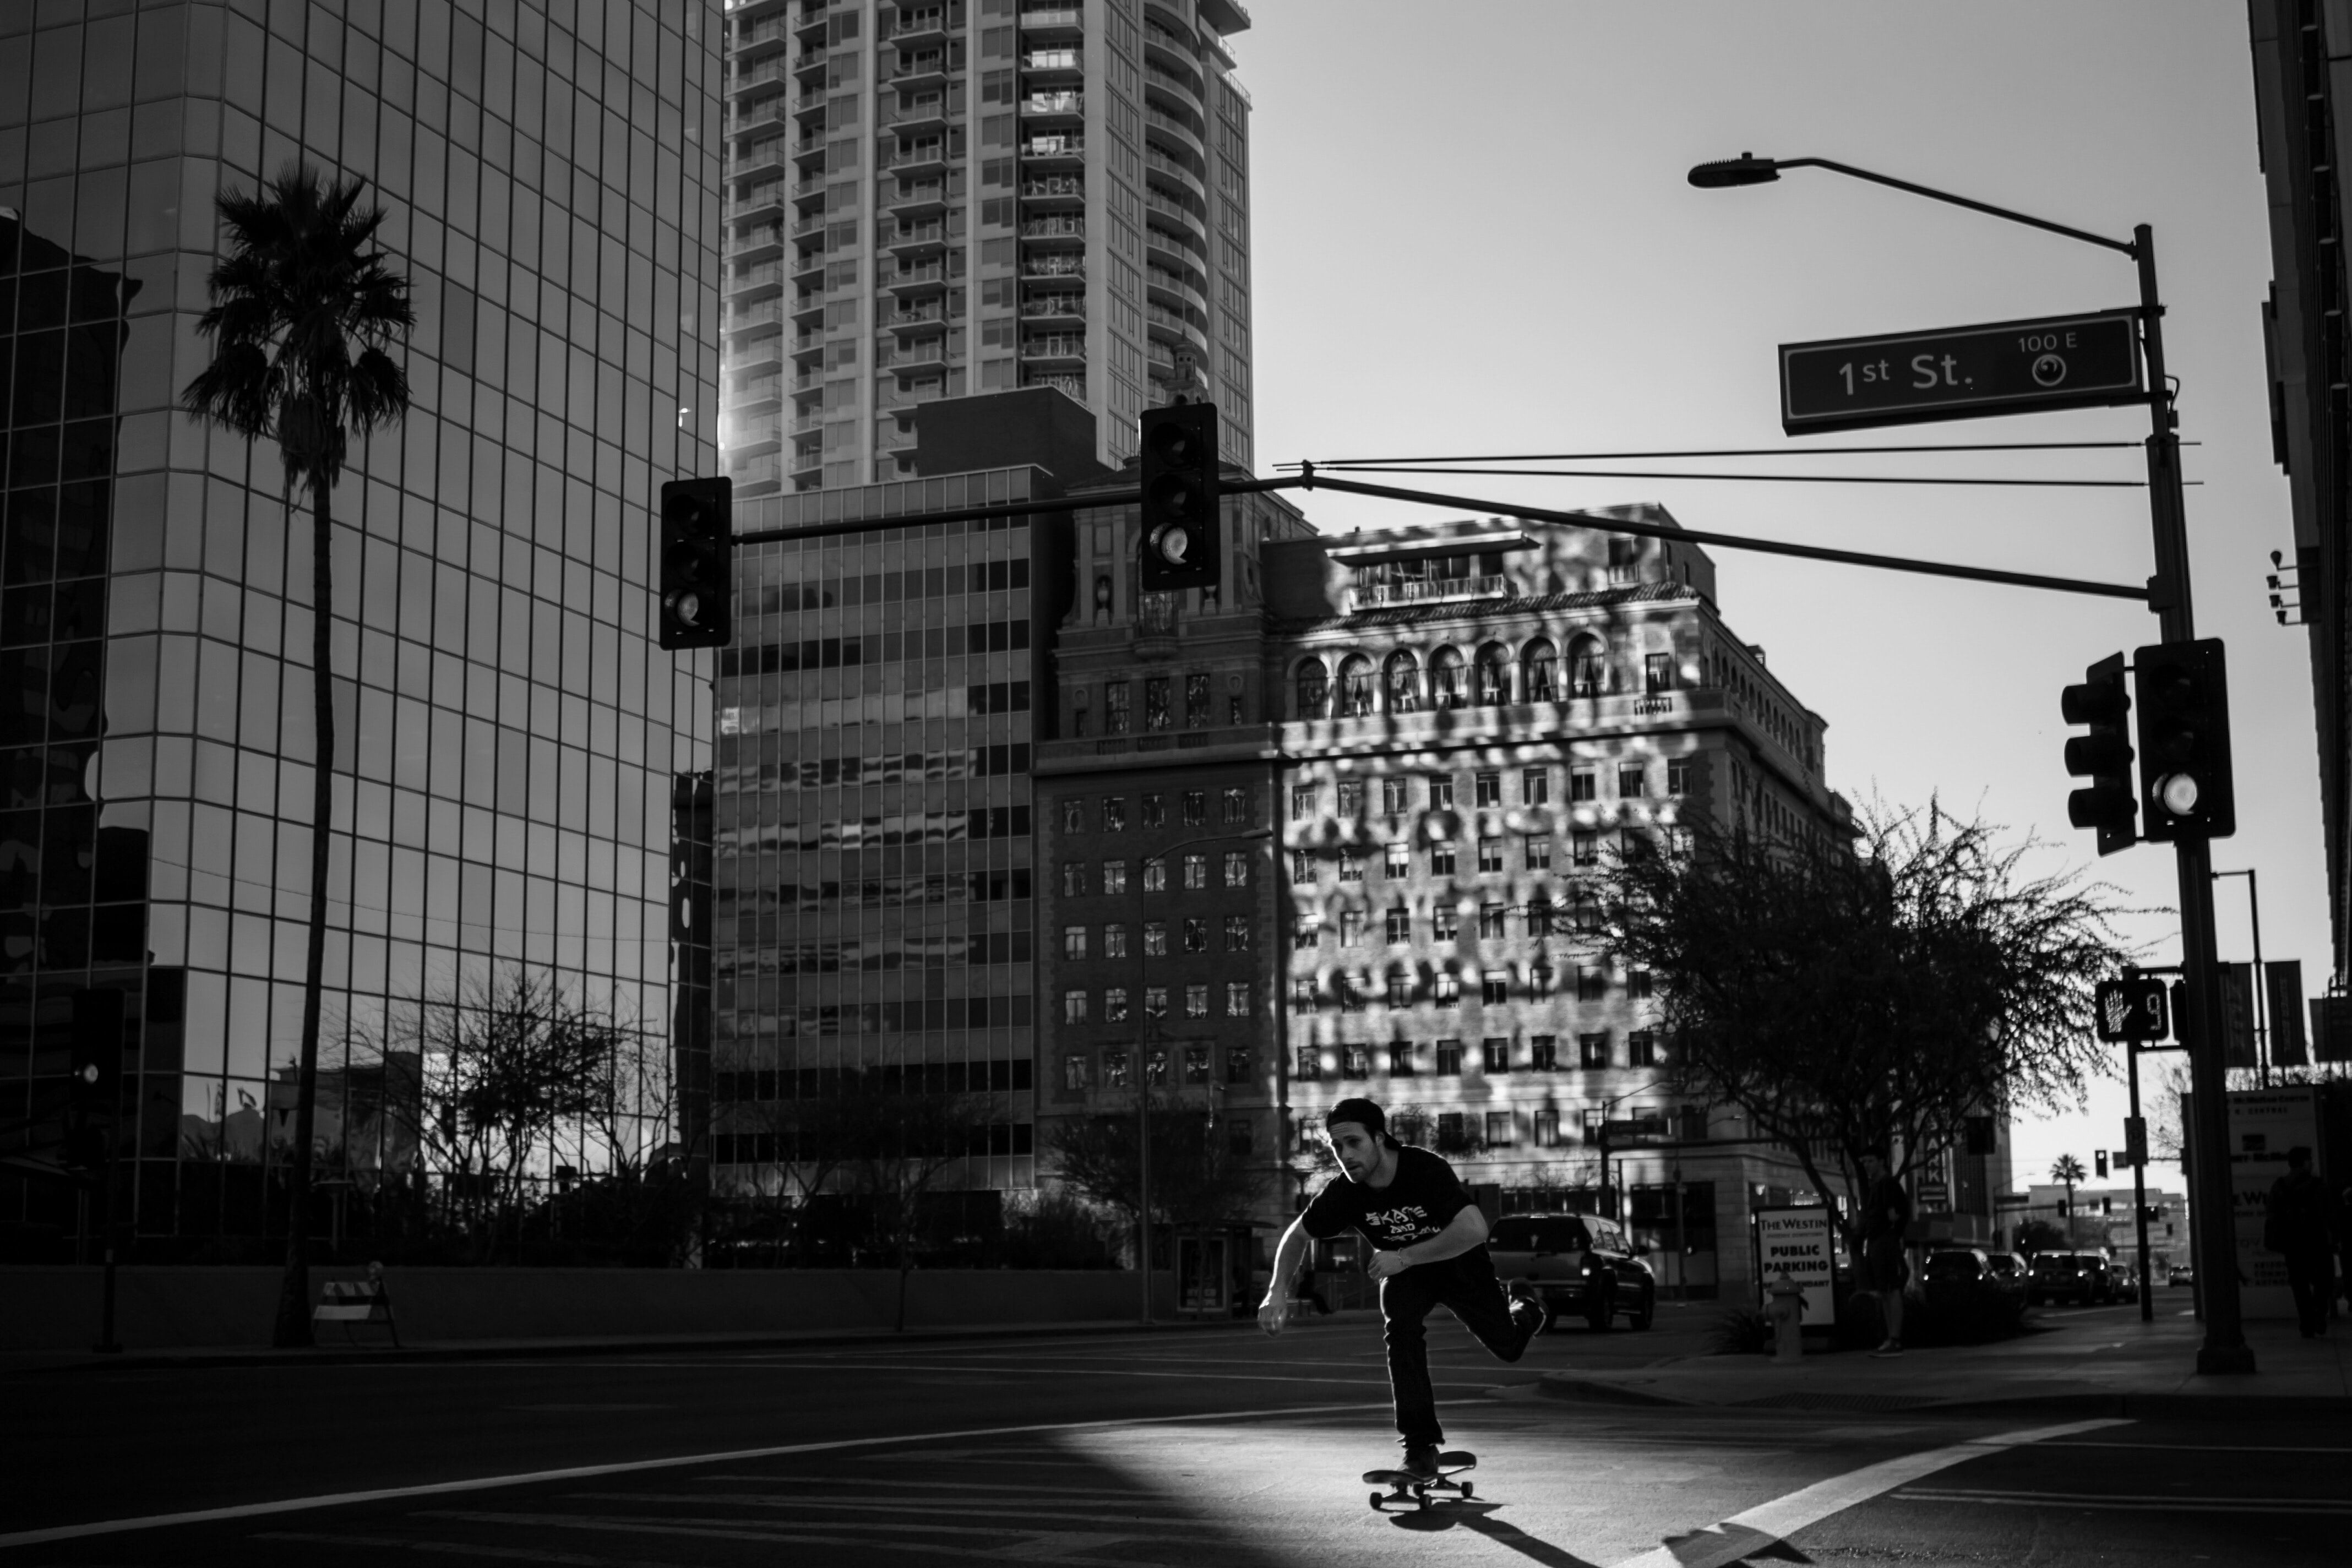 grayscale photography of person skateboarding during daytime